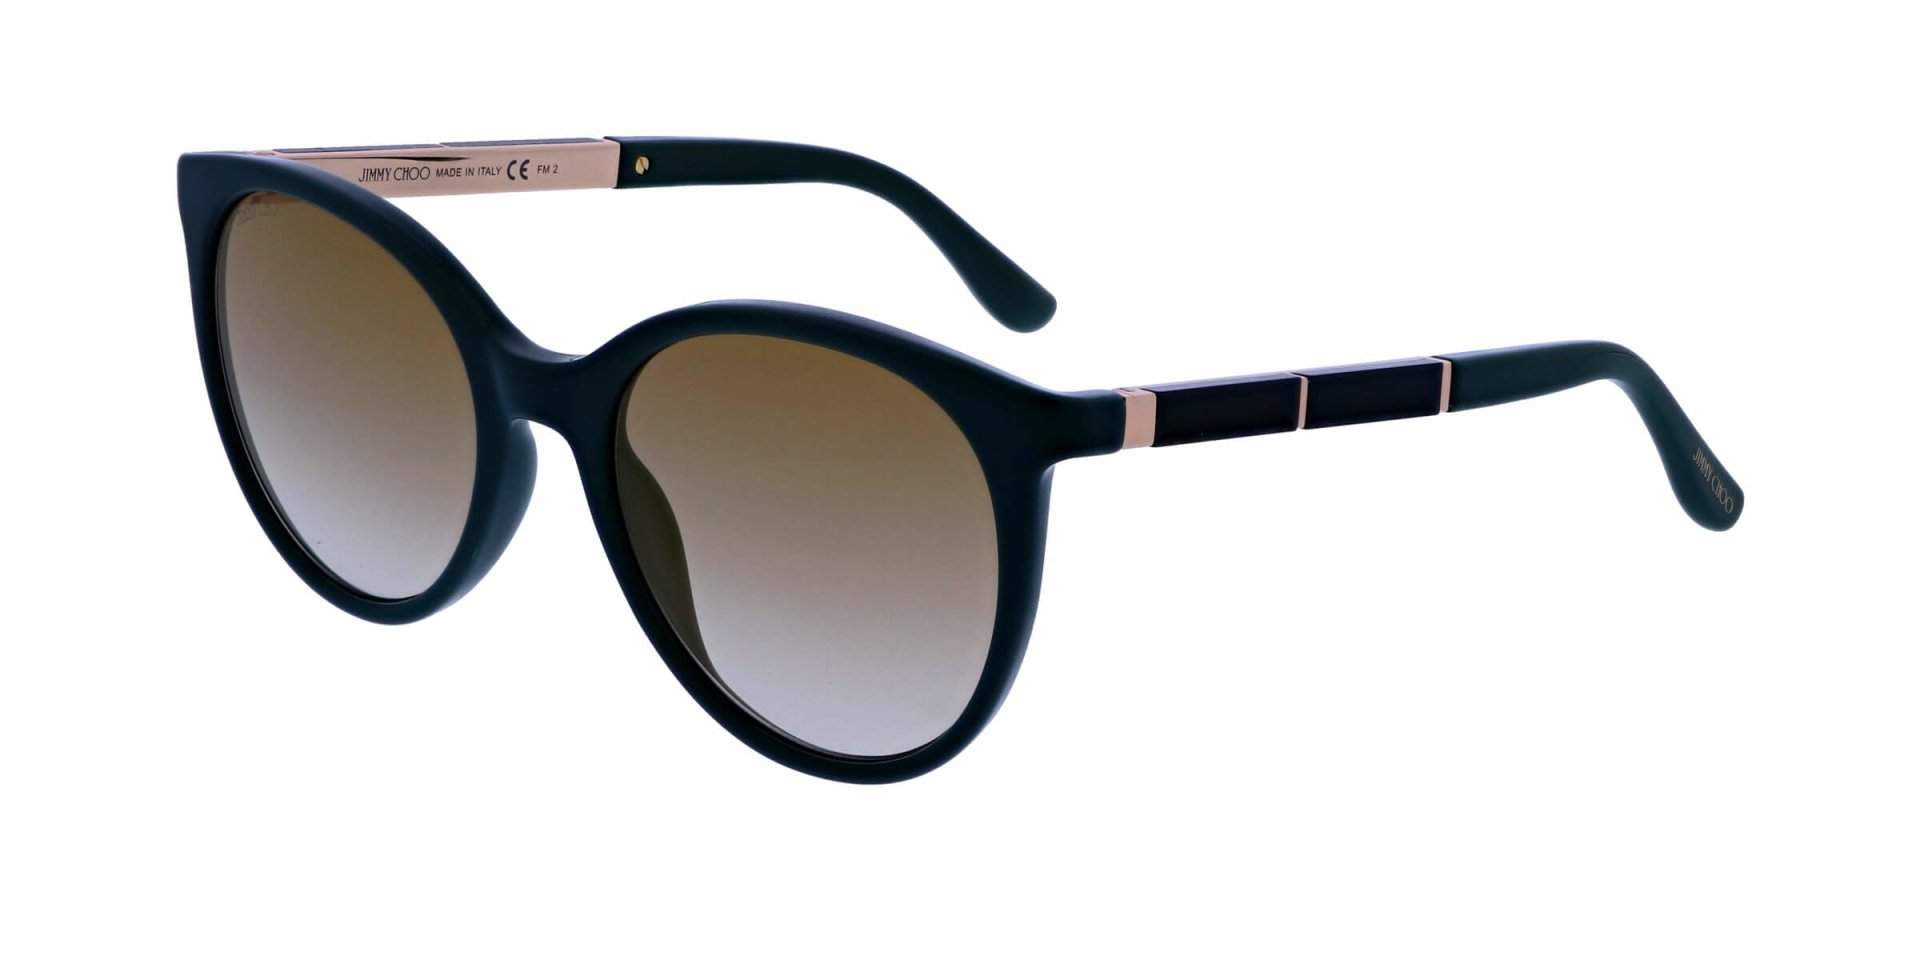 724119f032d1 Sunglasses JIMMY CHOO